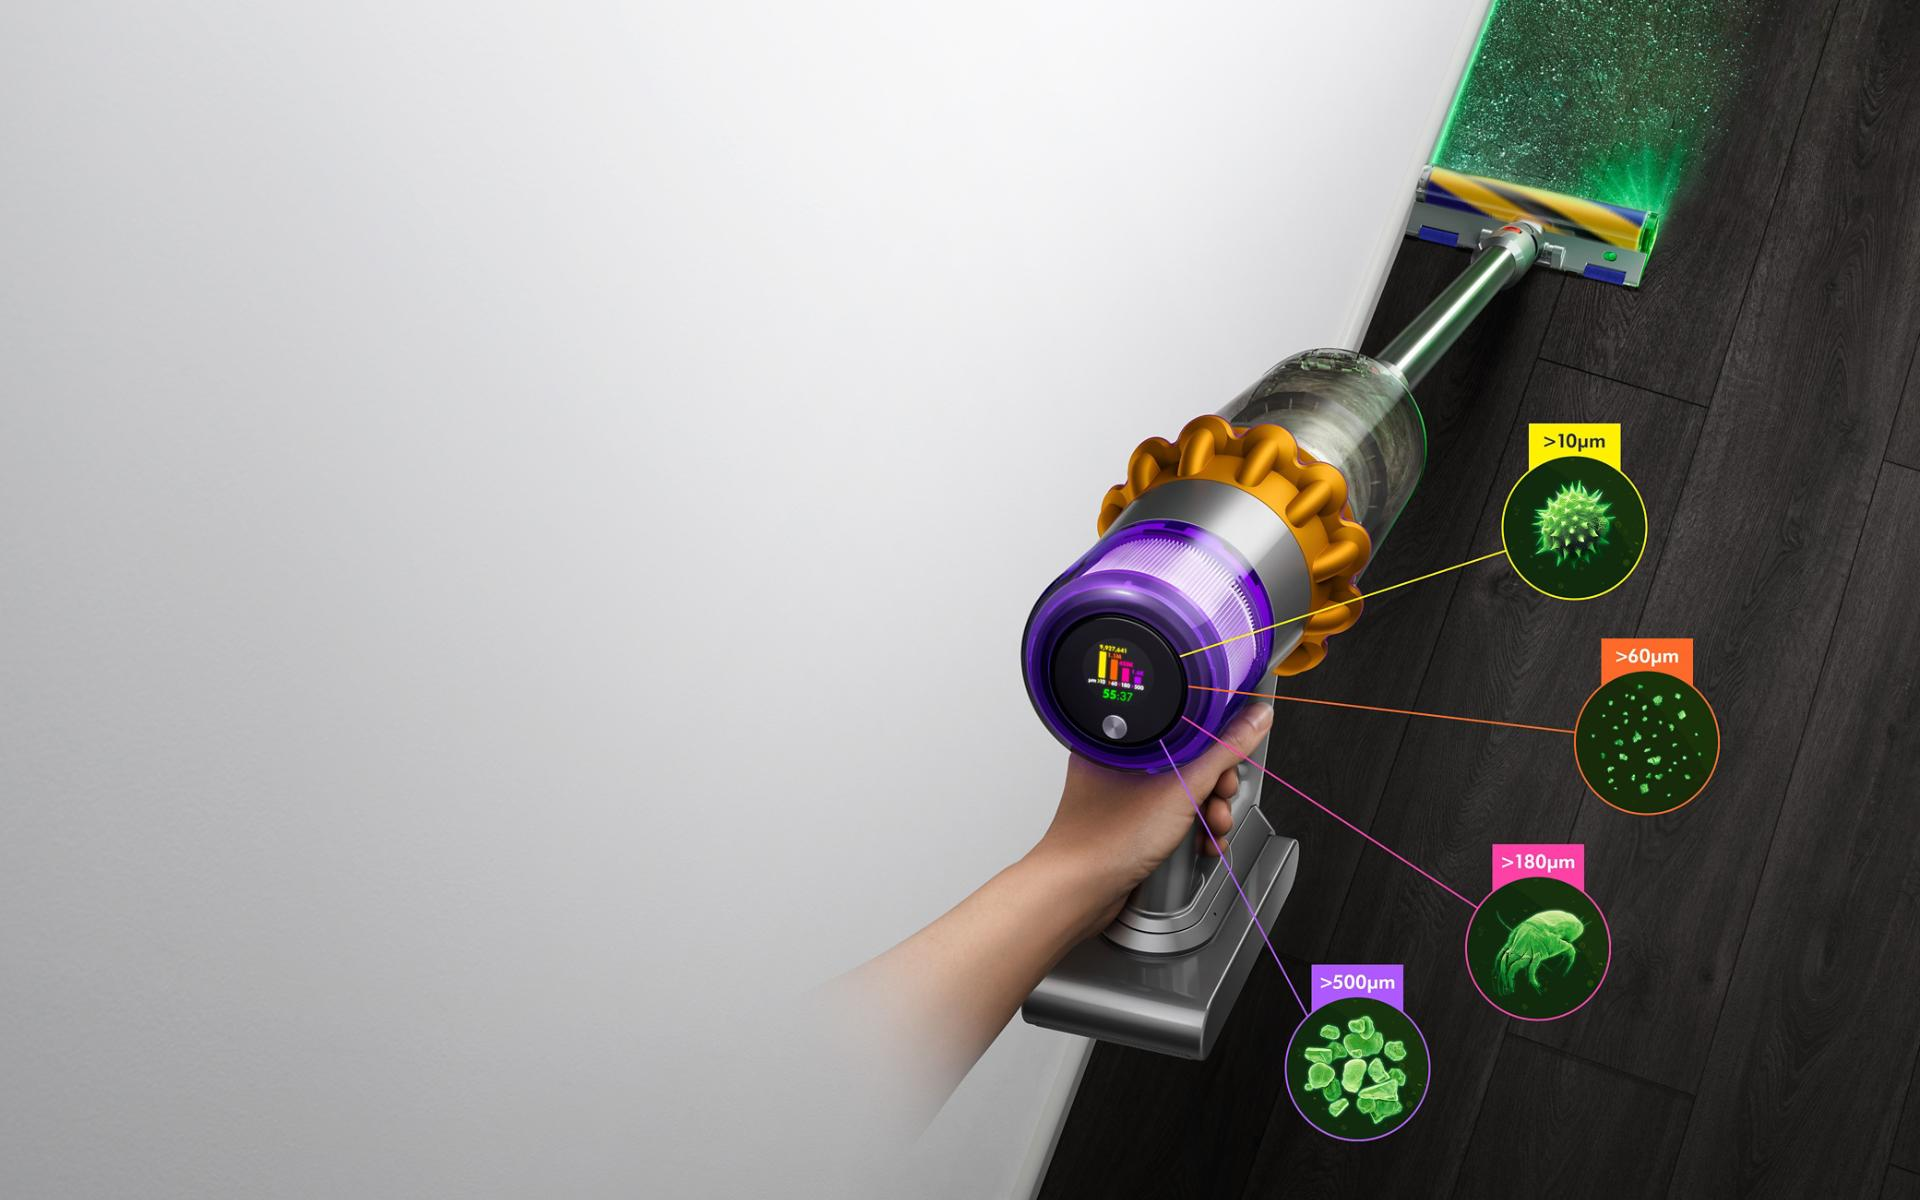 Dyson V15 Detect vacuum with Laser Slim Fluffy cleaner head, showing sizes of dust detected